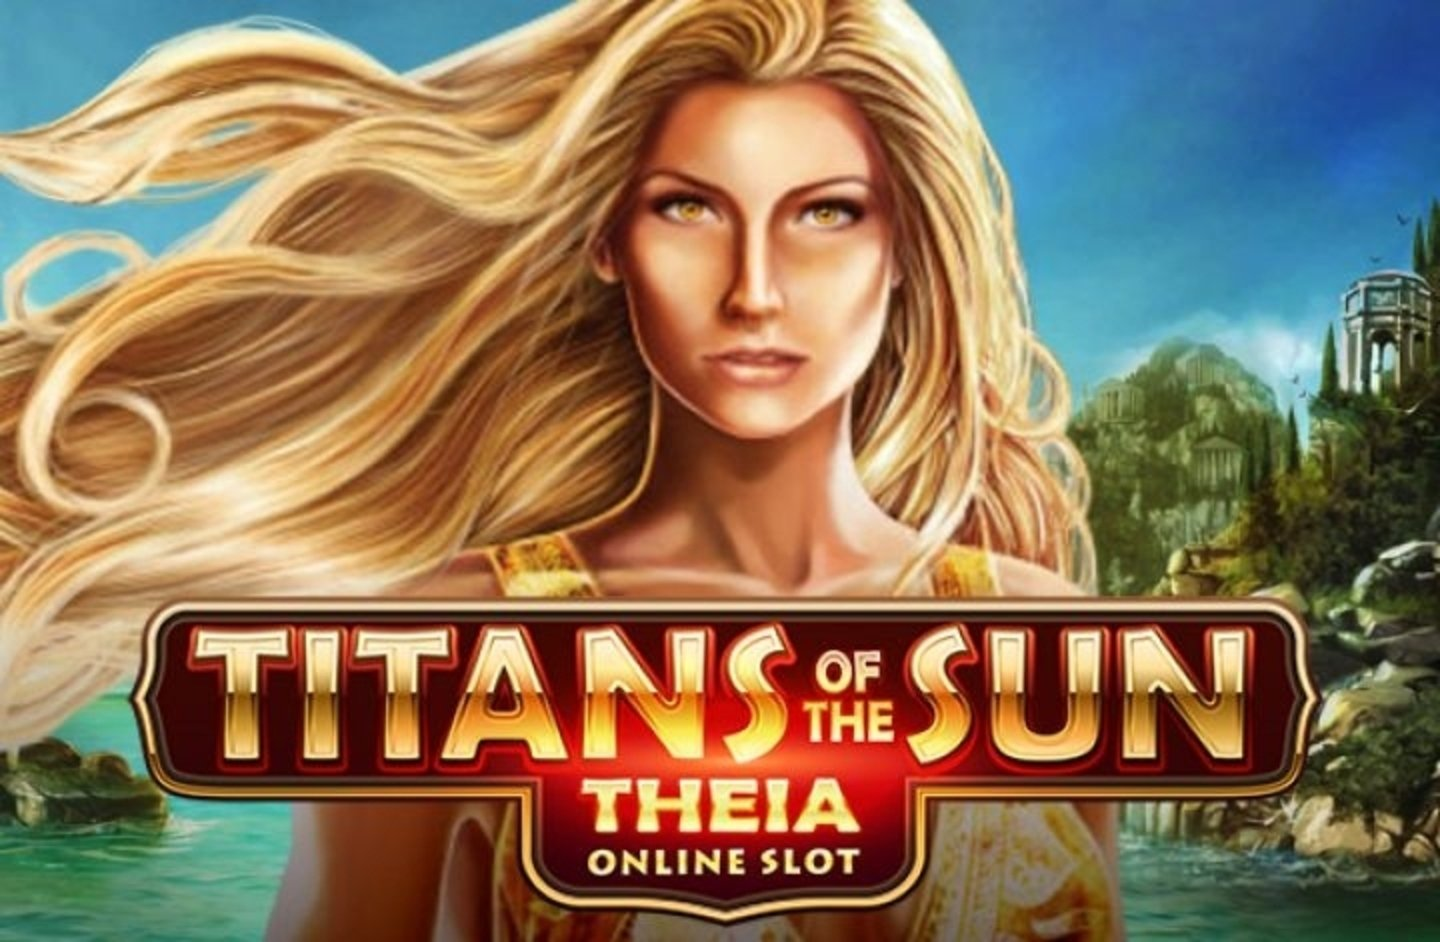 Titans of the Sun Theia Online Slot Demo Game by Microgaming